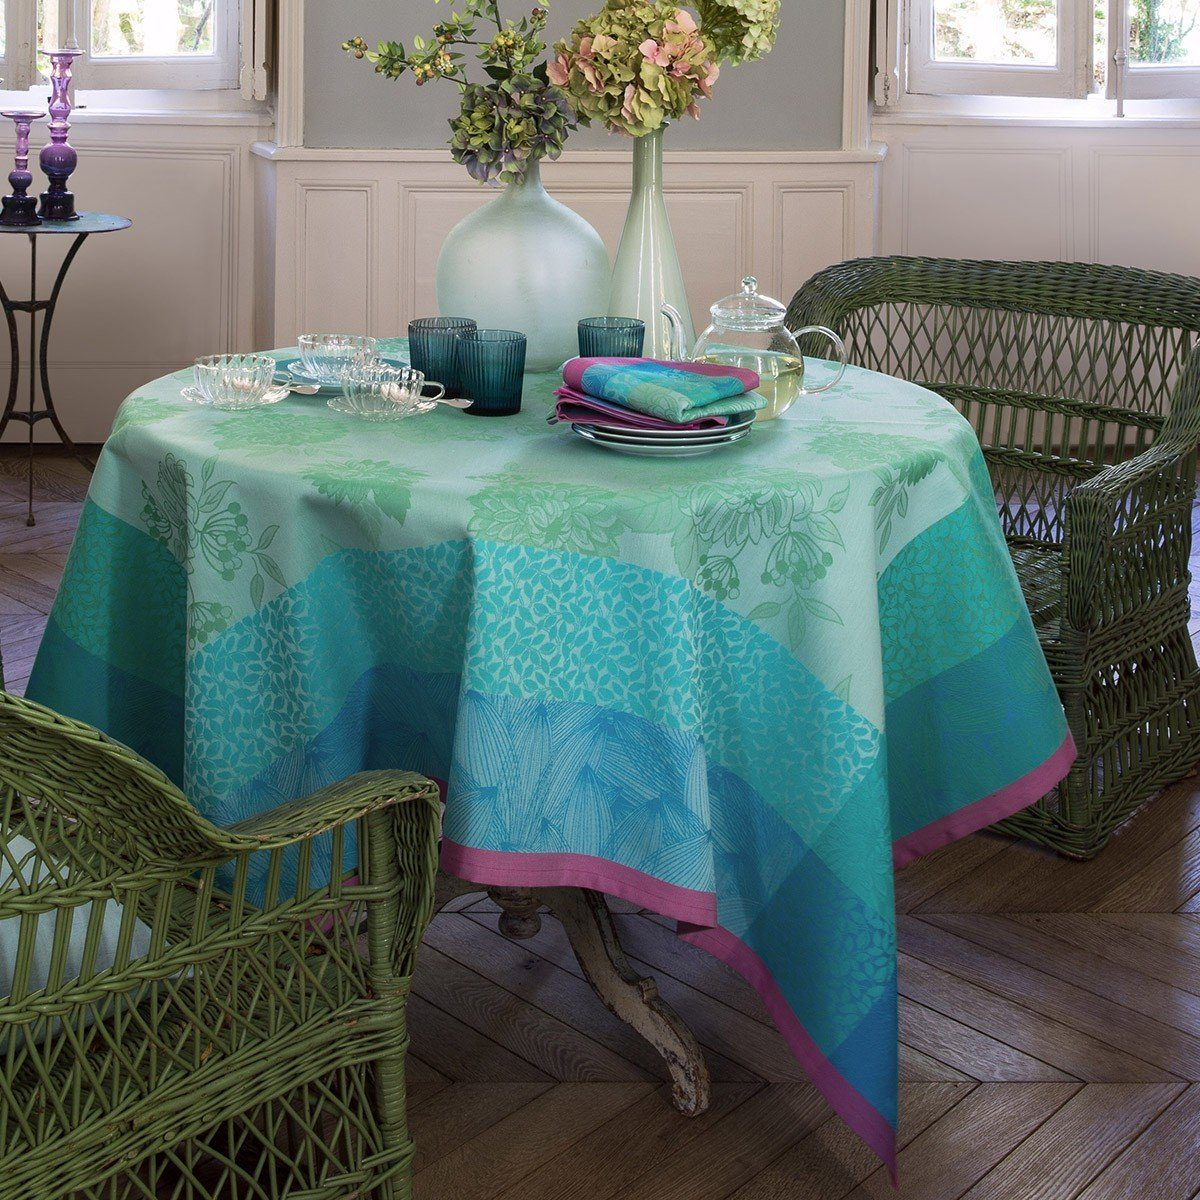 Le Jacquard Français Table Linen Parfums De Bagatelle Fig Linens Turquoise Tablecloth